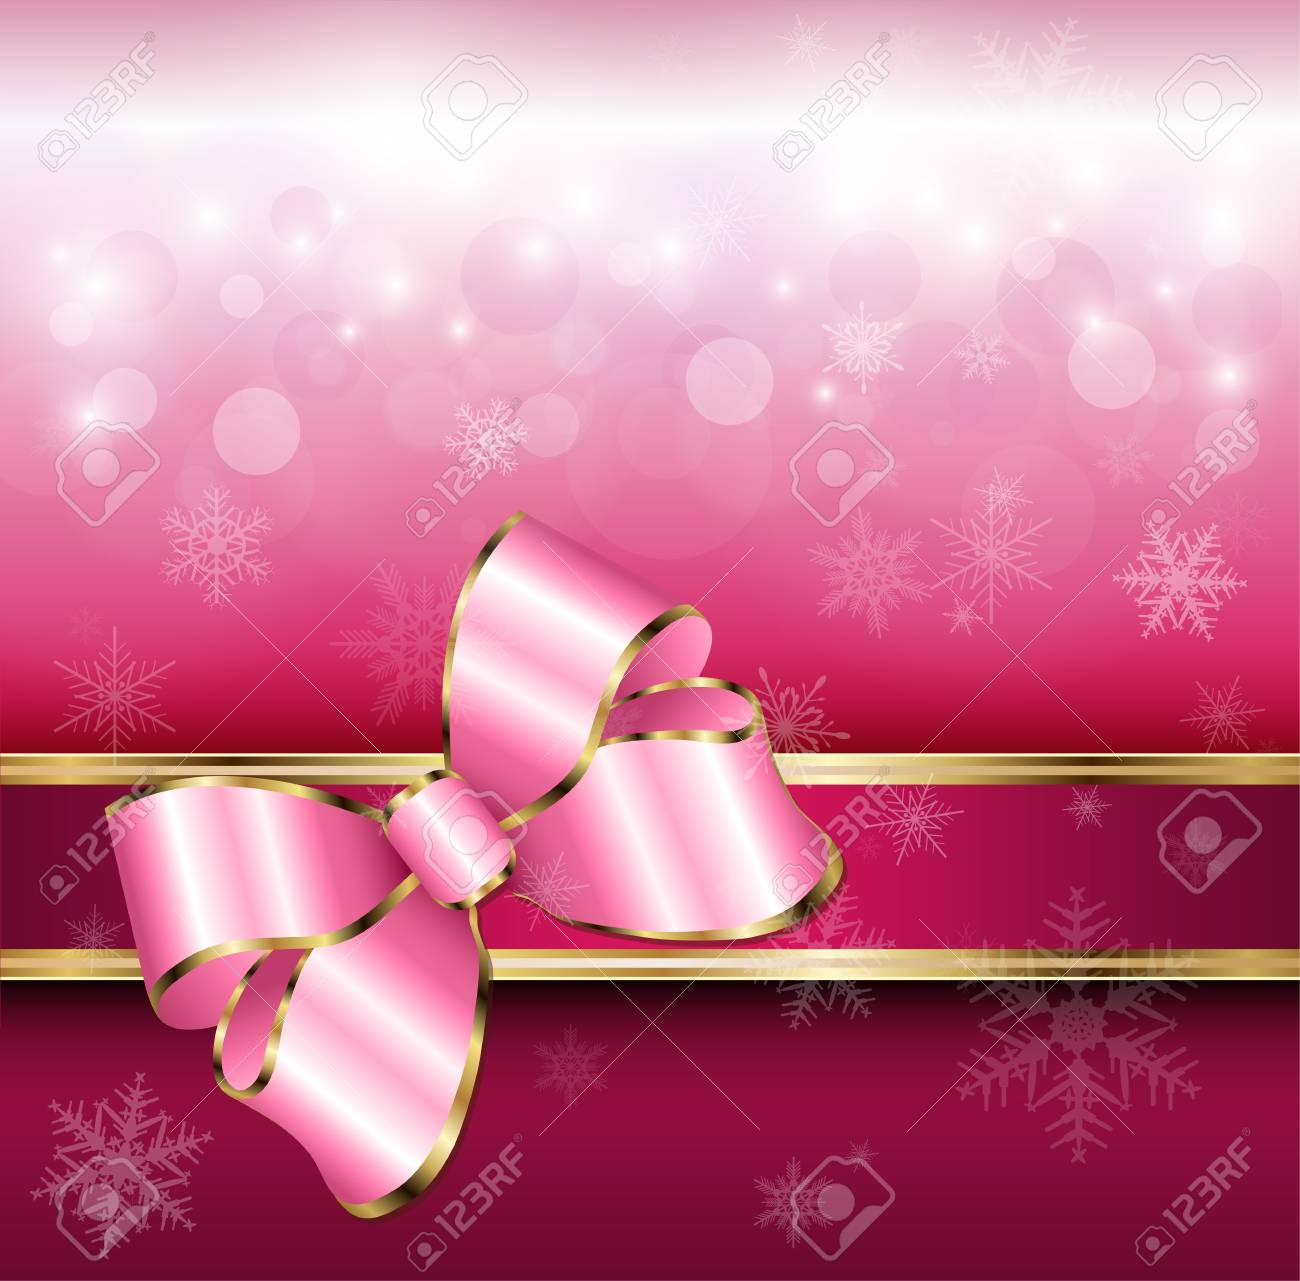 Abstract background with snowflakes and a bow, for Christmas and New Year design, vector. Stock Vector - 16400108